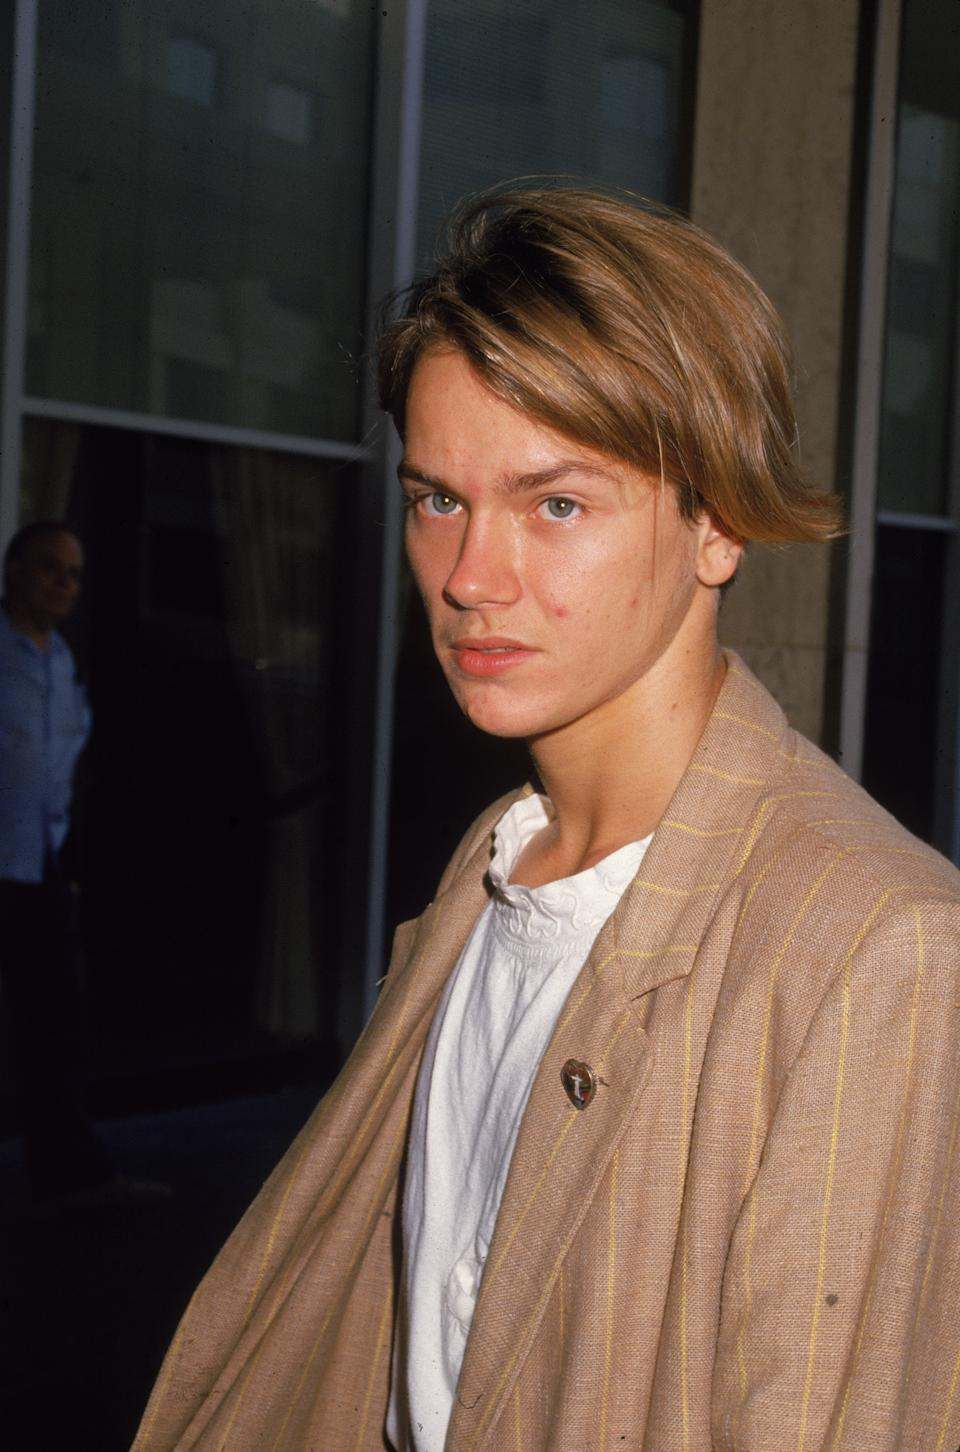 American actor River Phoenix (1970 - 1993) at press conference, September 23, 1988. (Photo by Darlene Hammond/Getty Images)